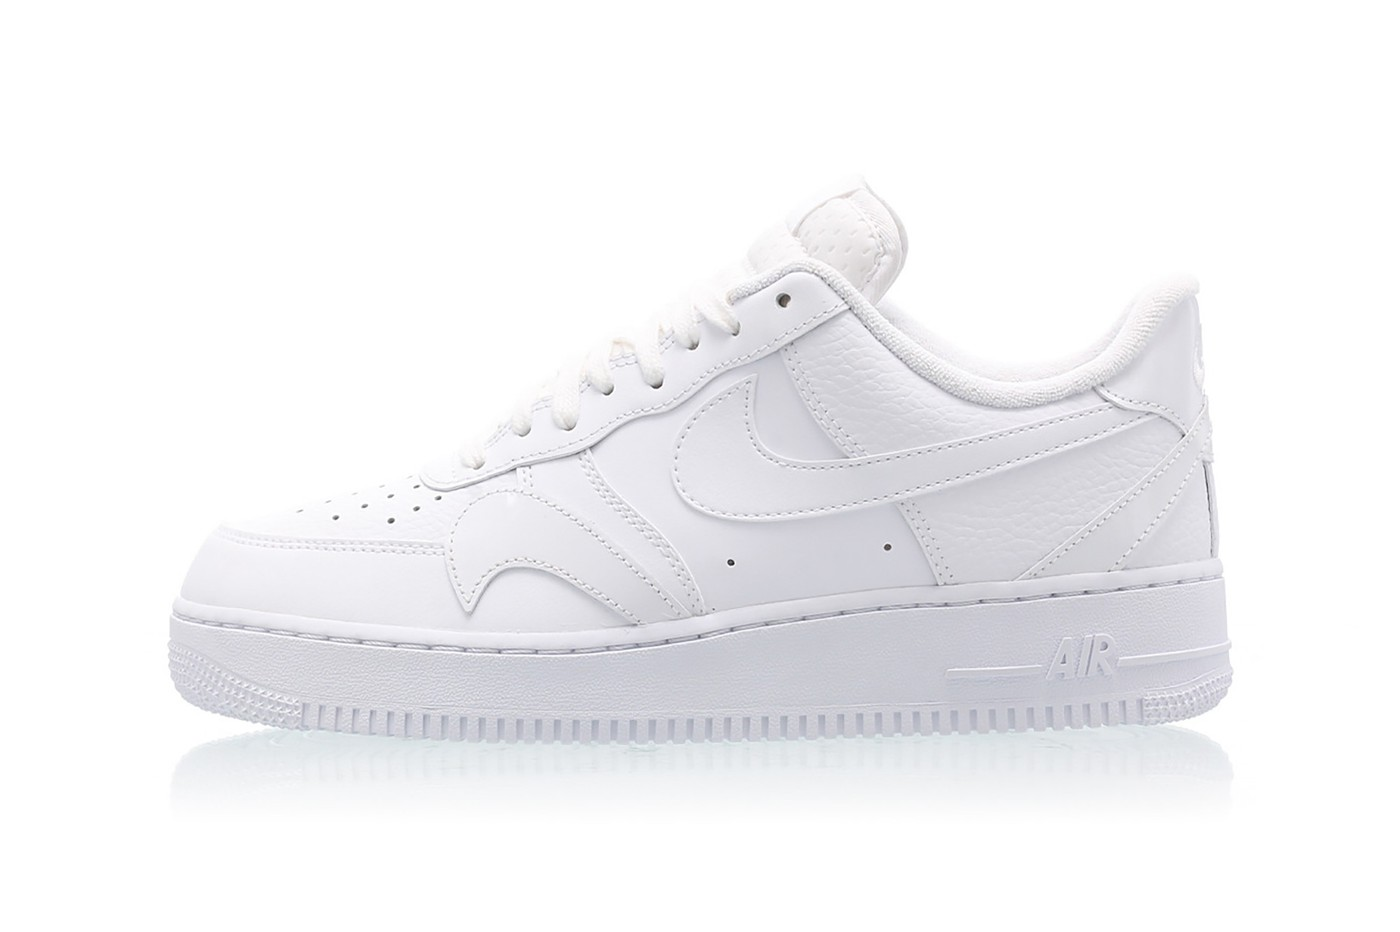 Nike Air Force 1 Low LV8 White Swoosh Sneakers